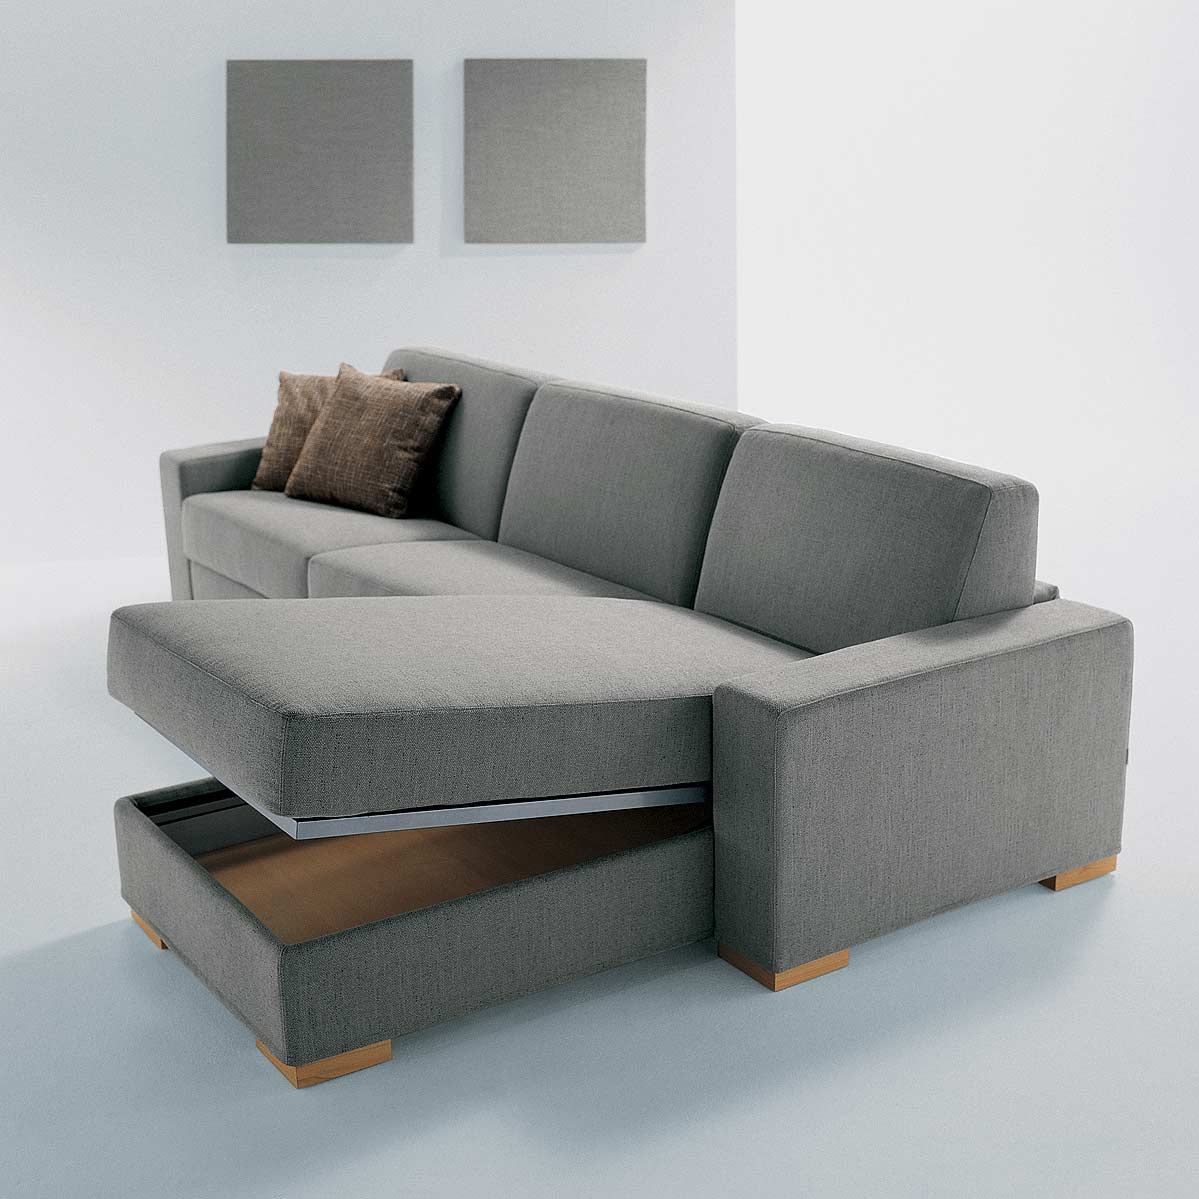 Sofa Beds With Storage Compact